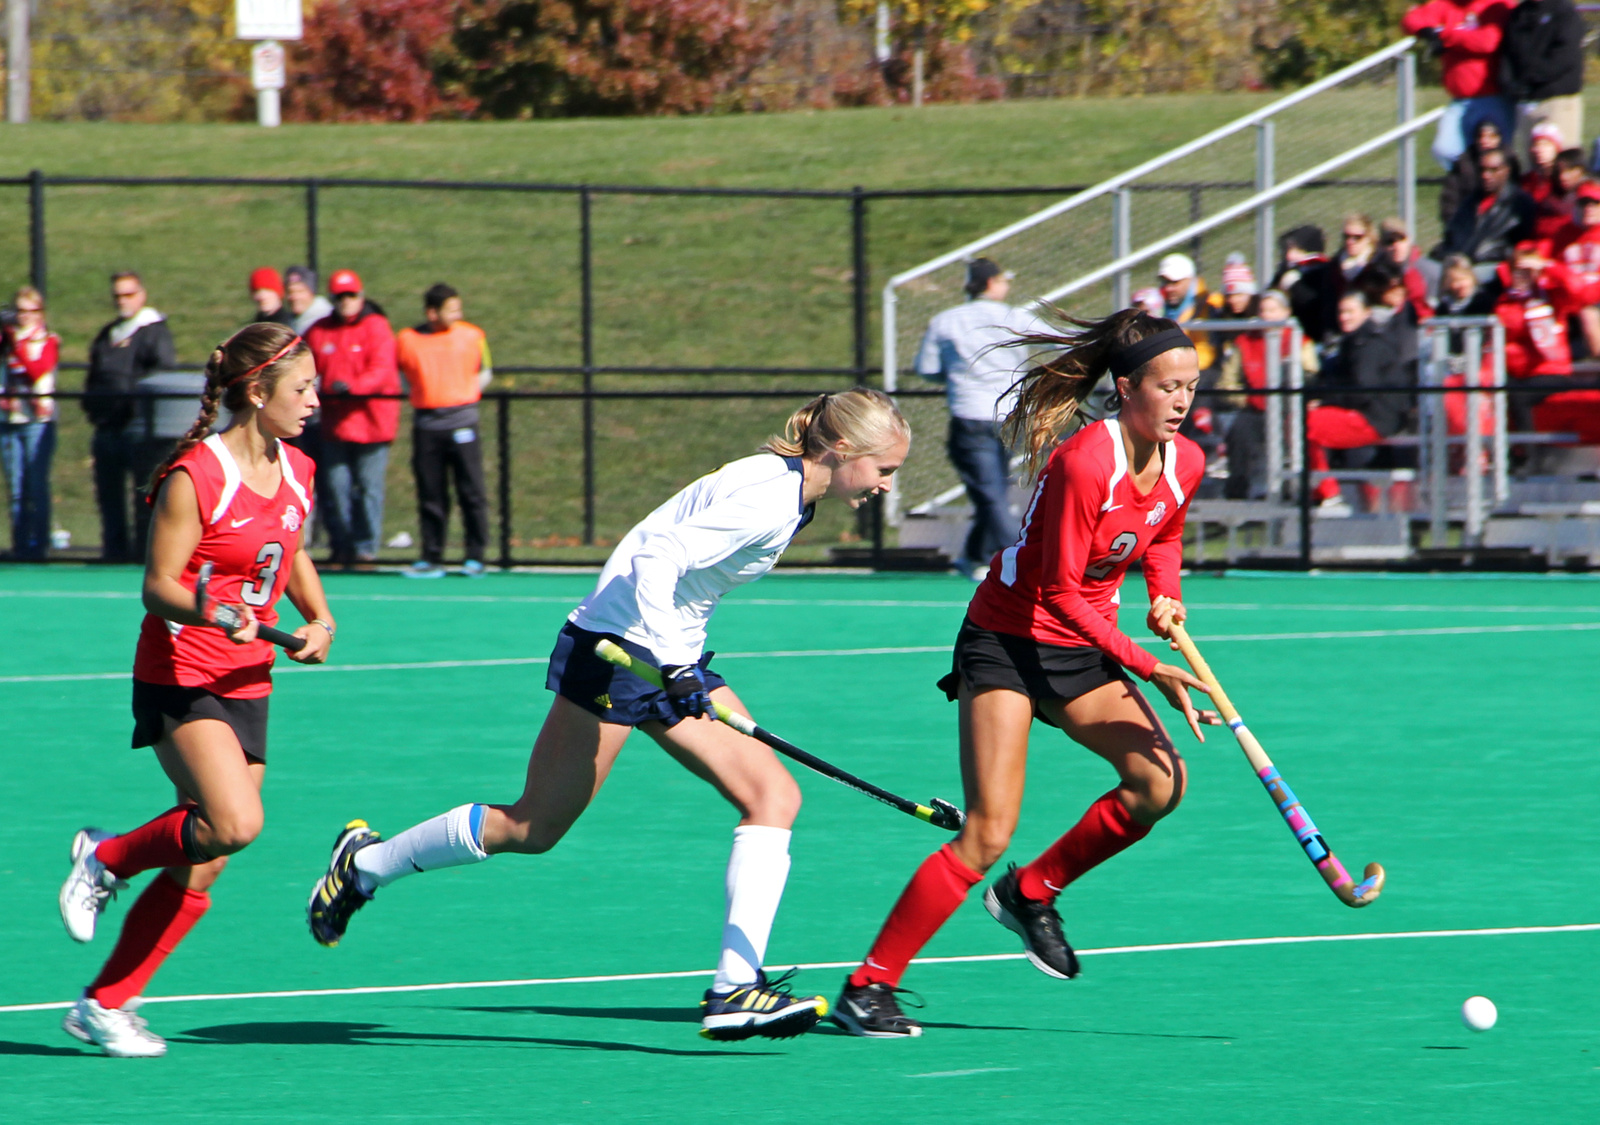 sports_field_hockey_WEB